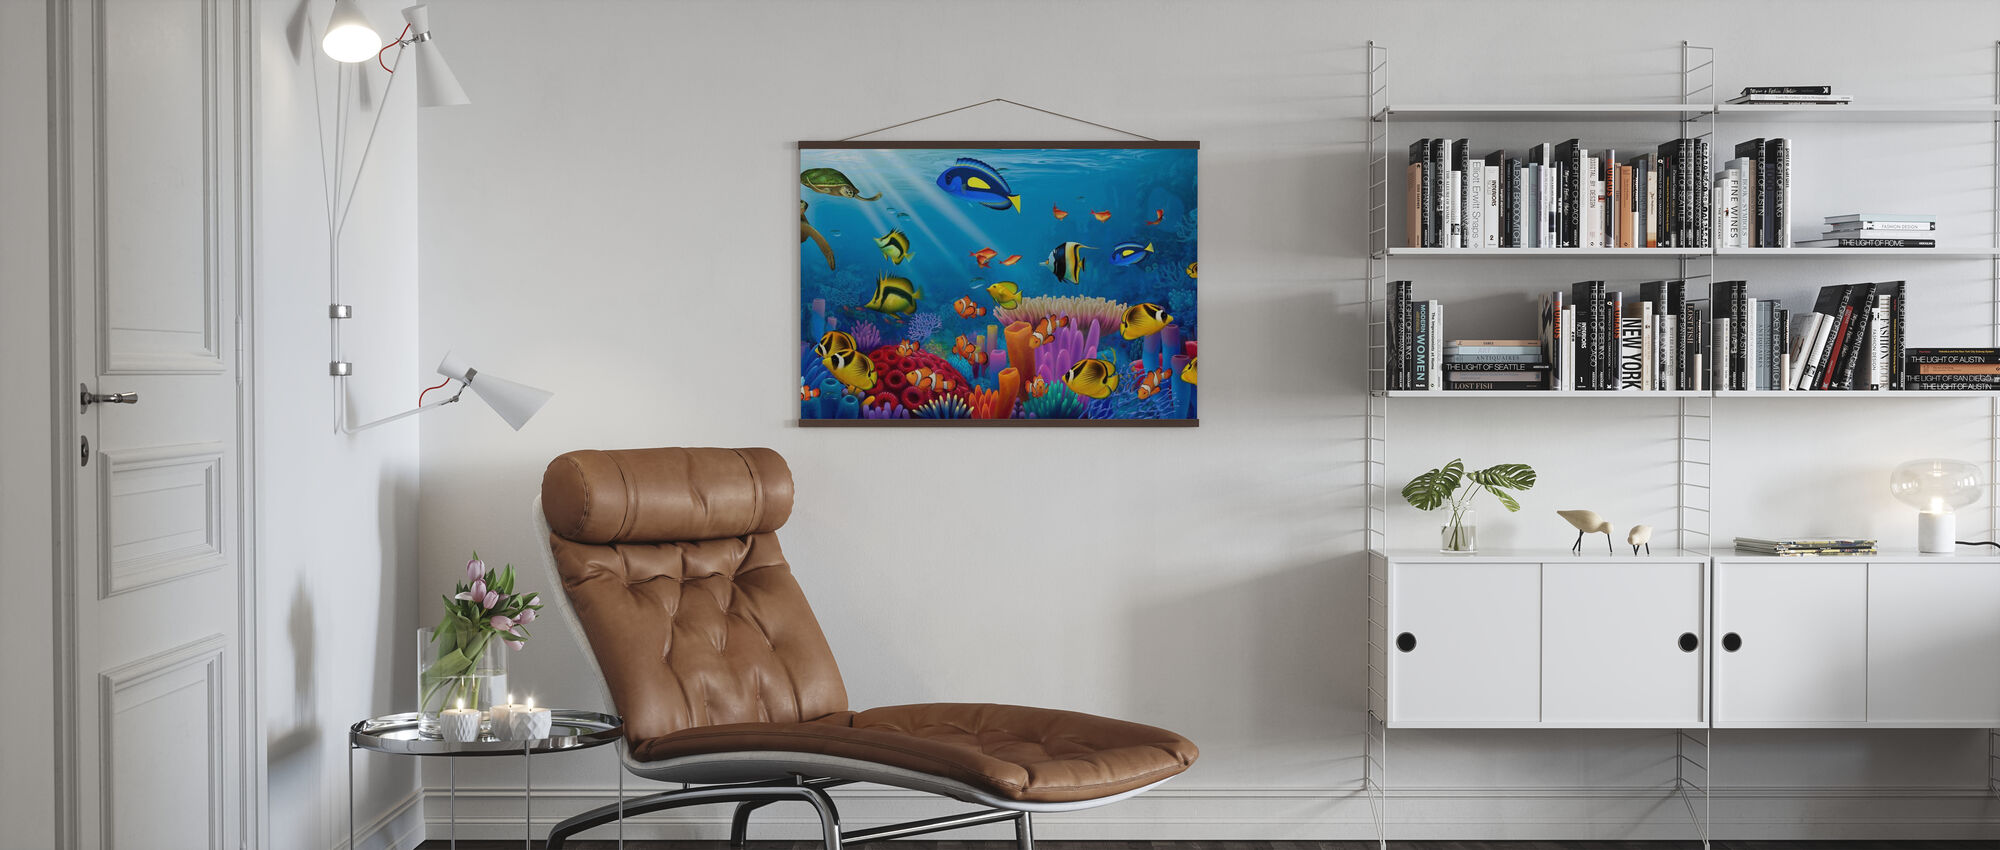 Sea of Life - Poster - Living Room